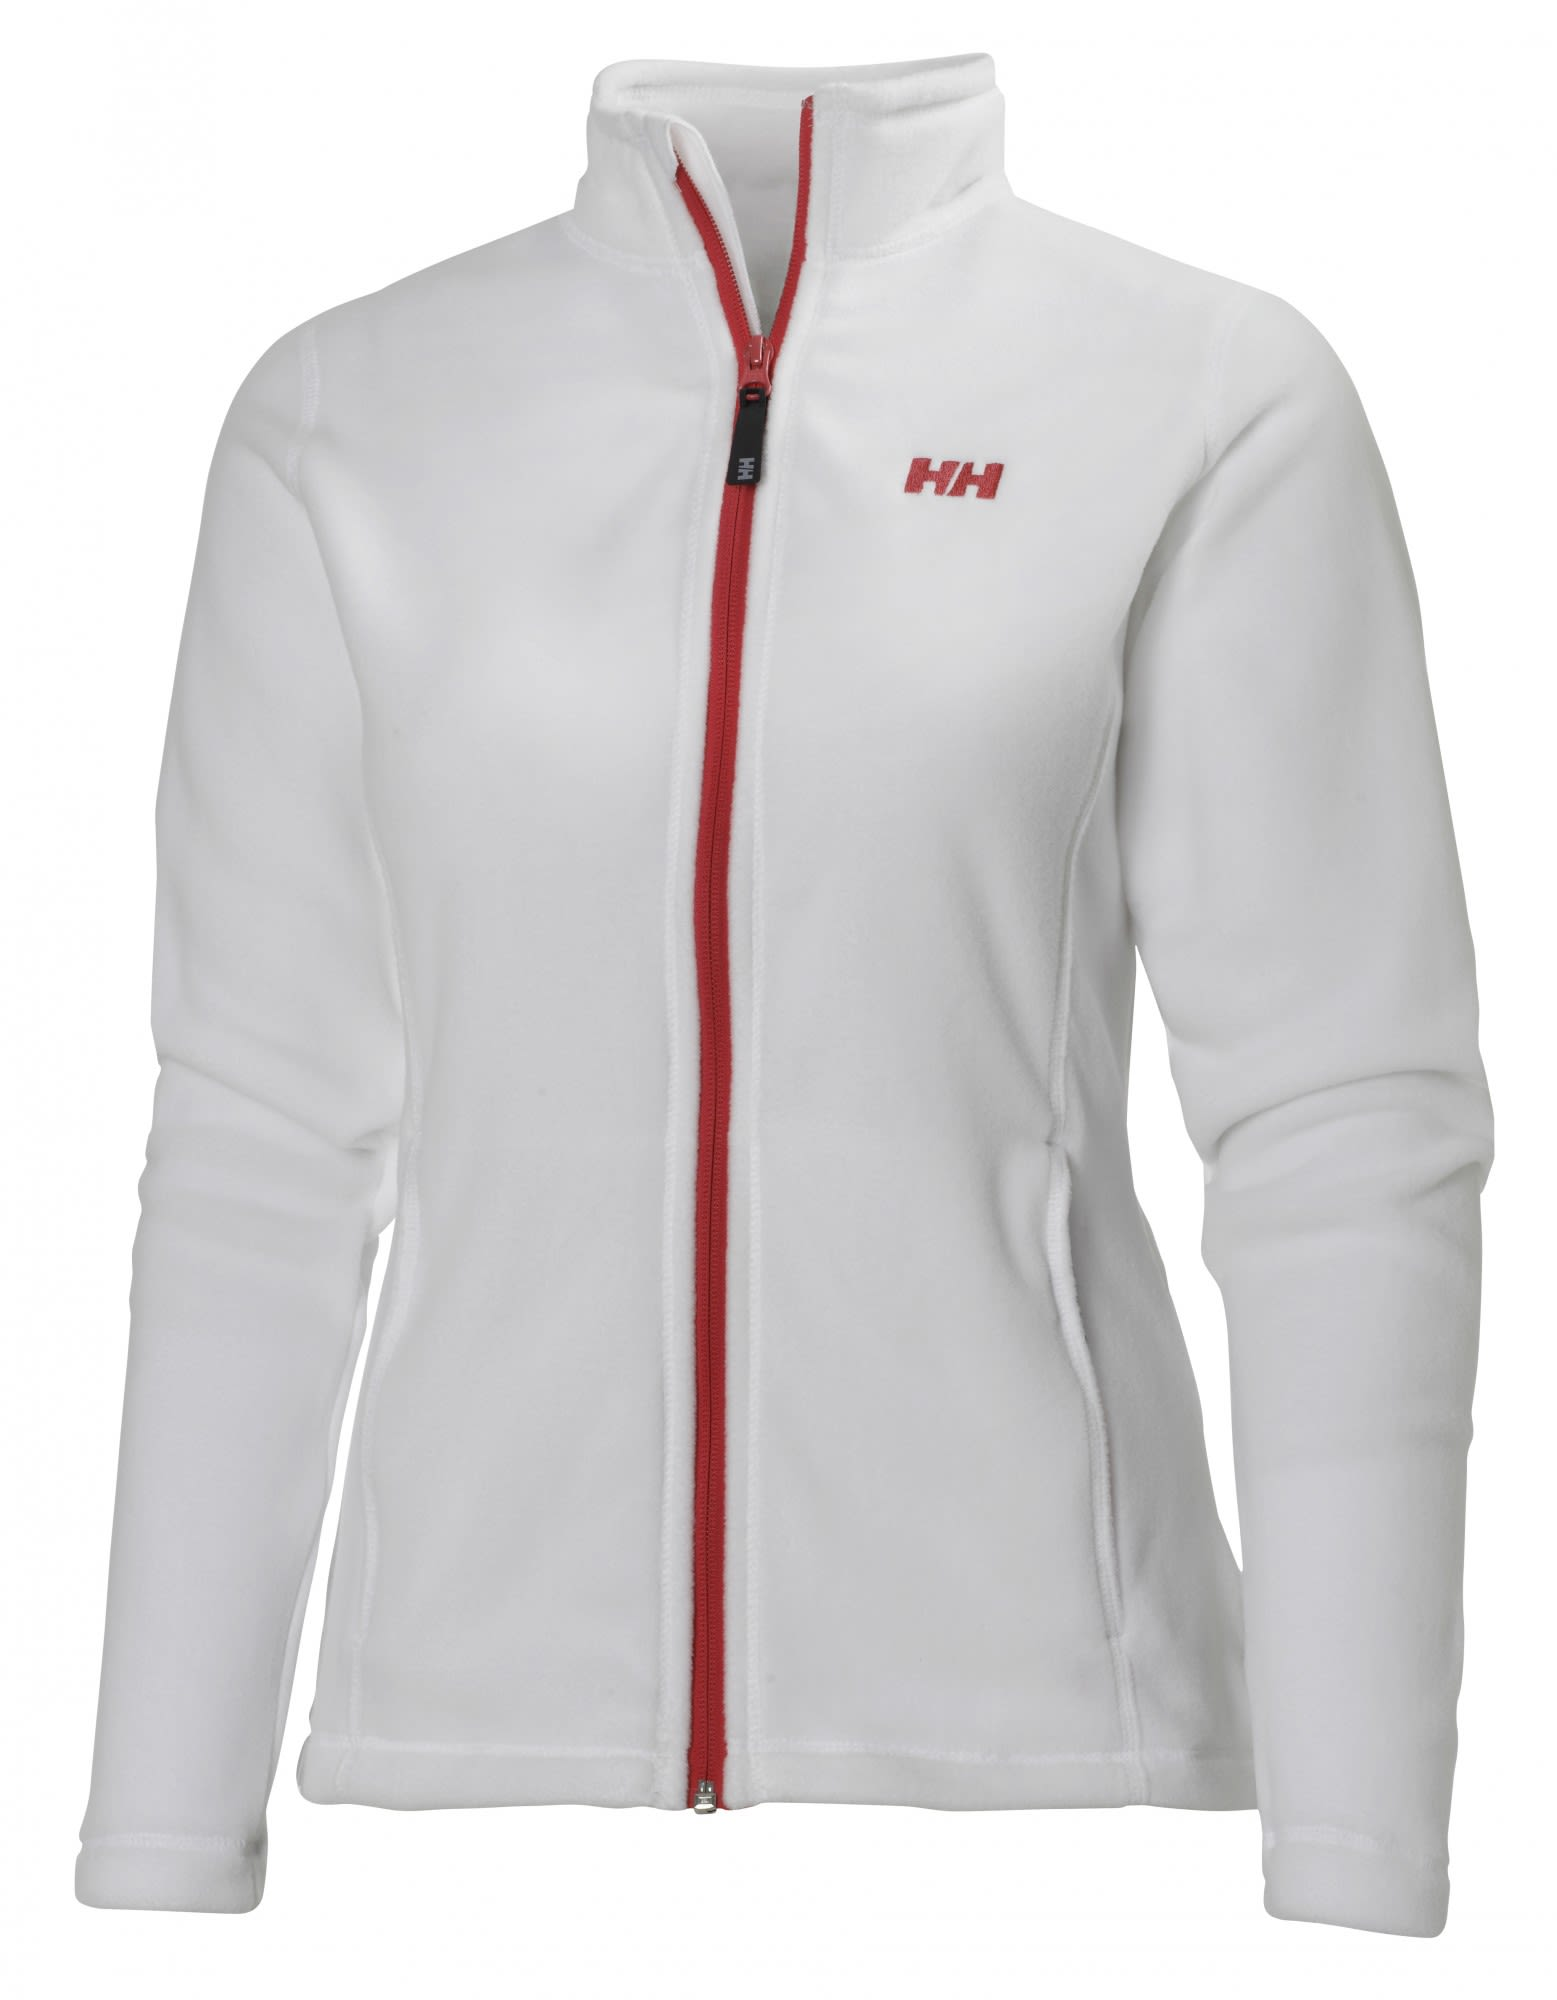 Helly Hansen Daybreaker Fleece Jacket (Modell Winter 2017) Weiß, Female Polarte